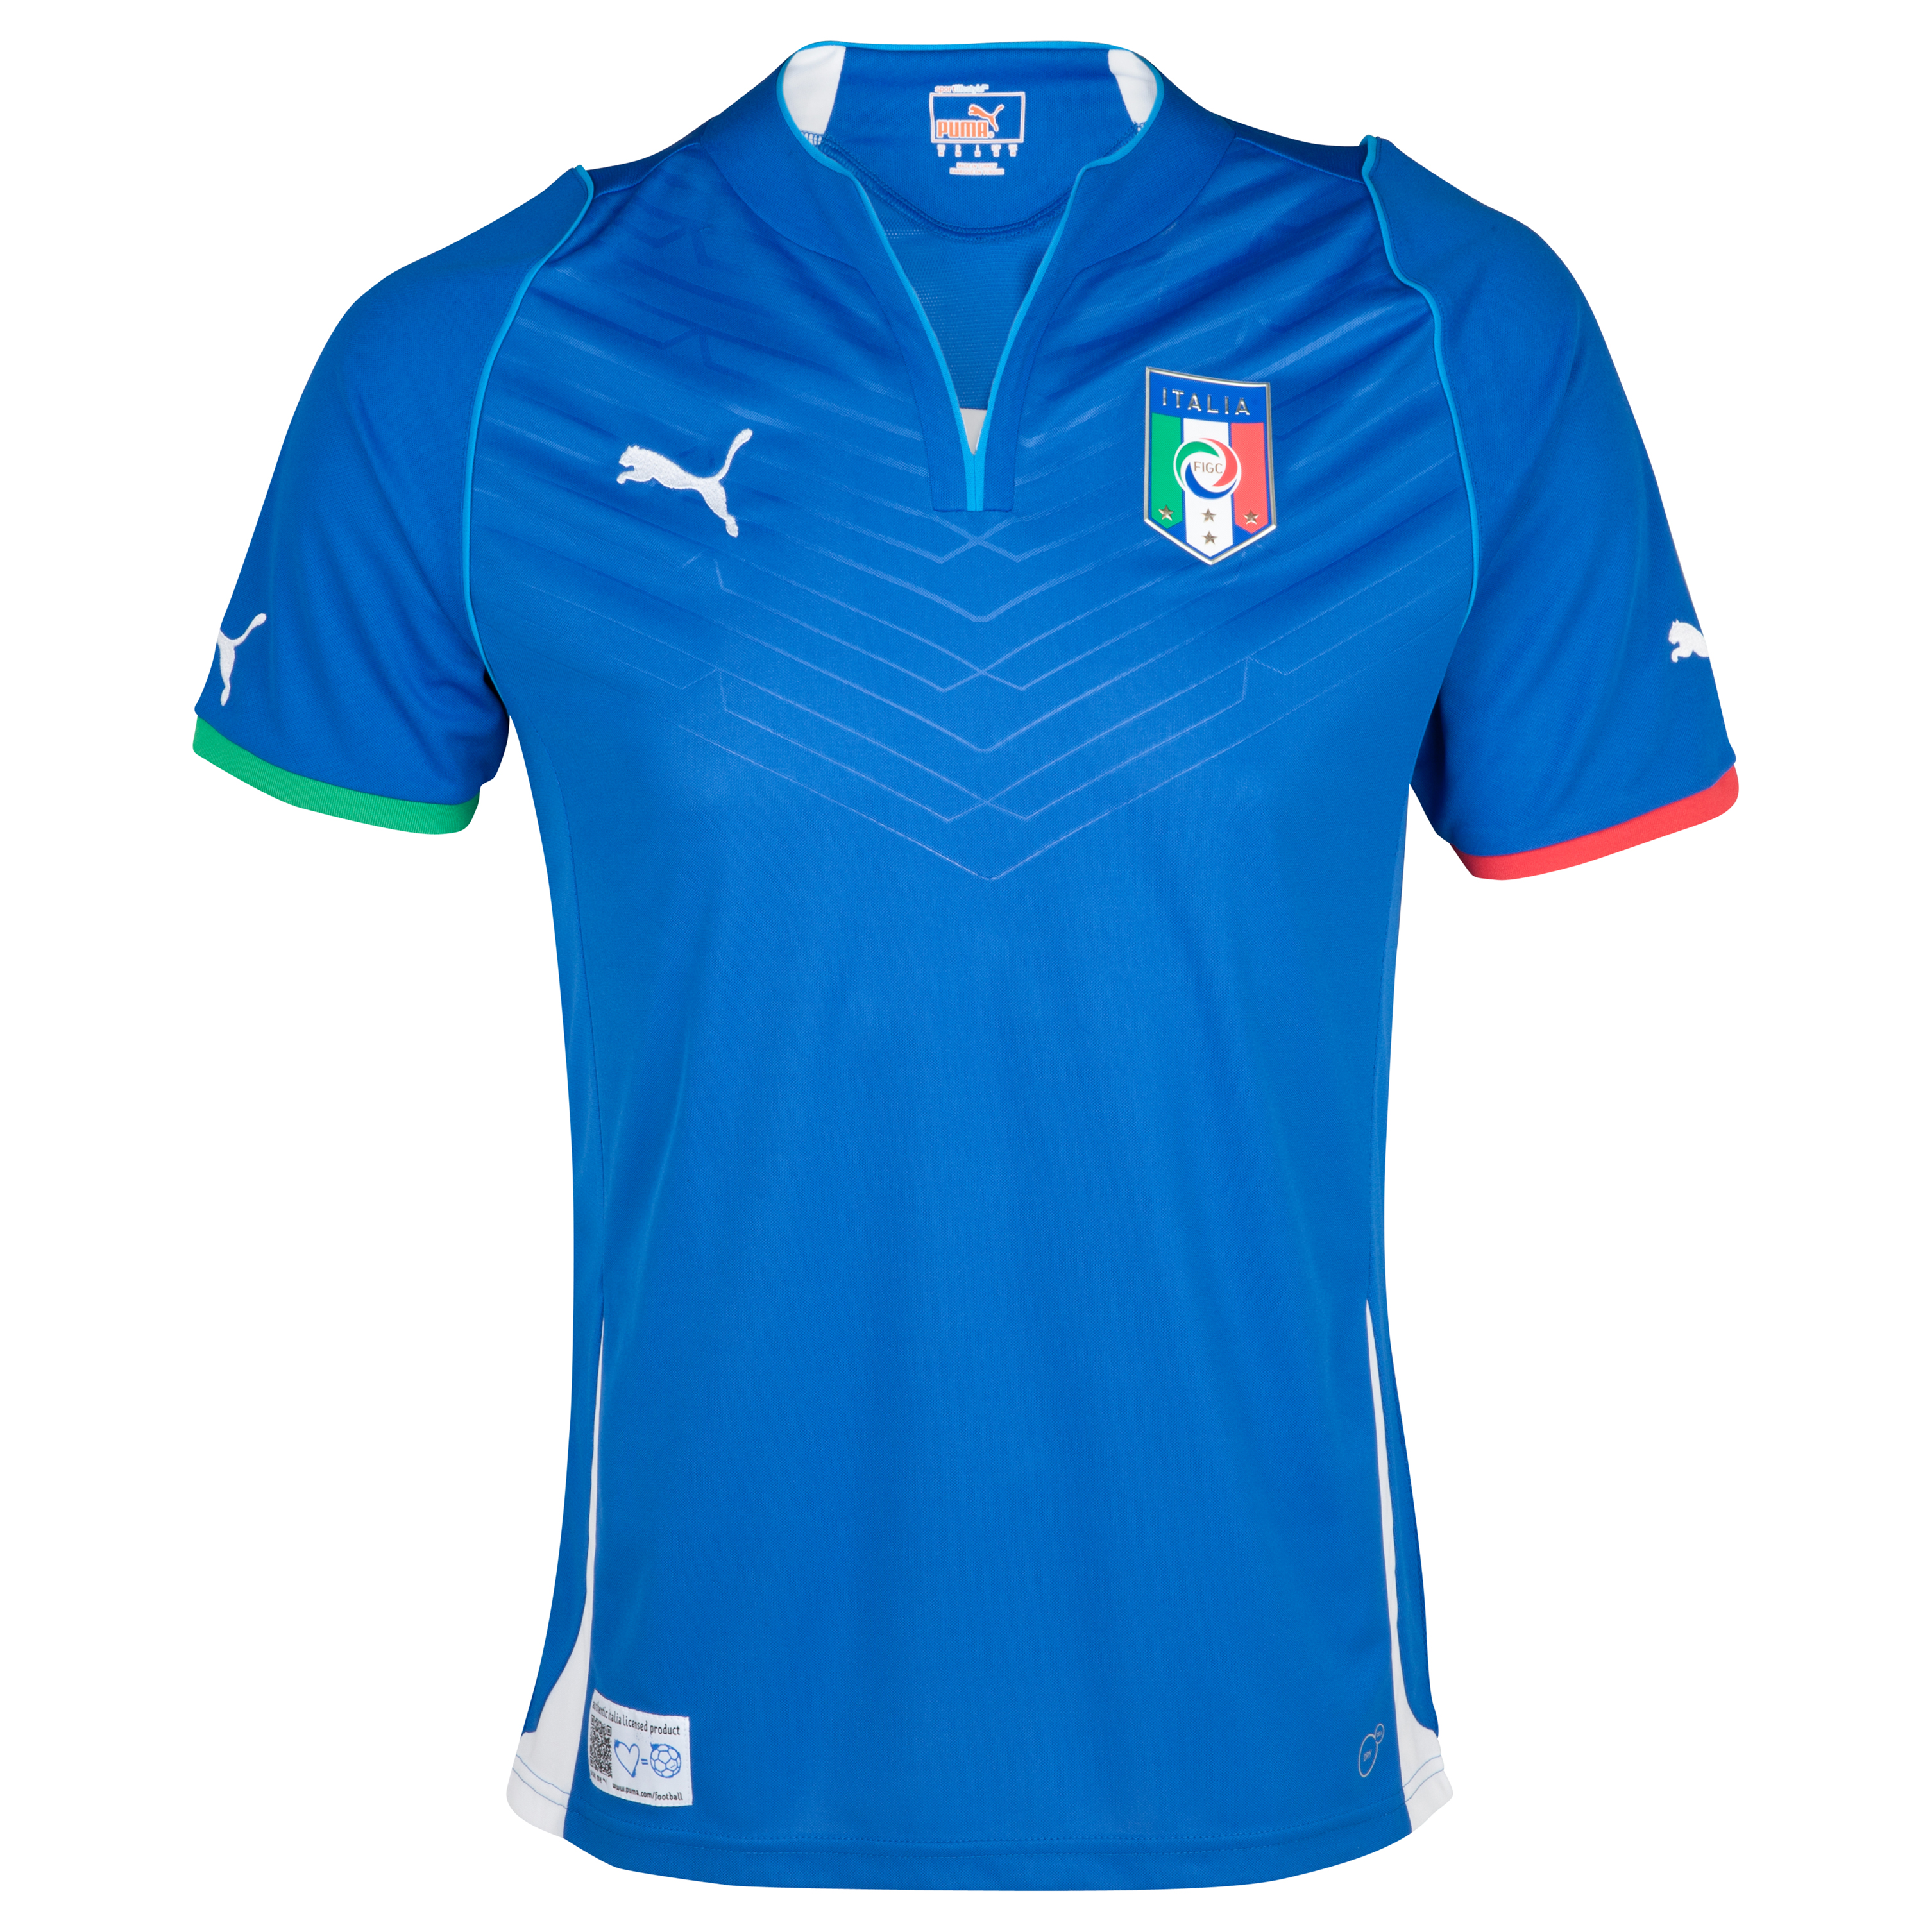 Italy Confederations Cup Home Shirt 2013 Youths